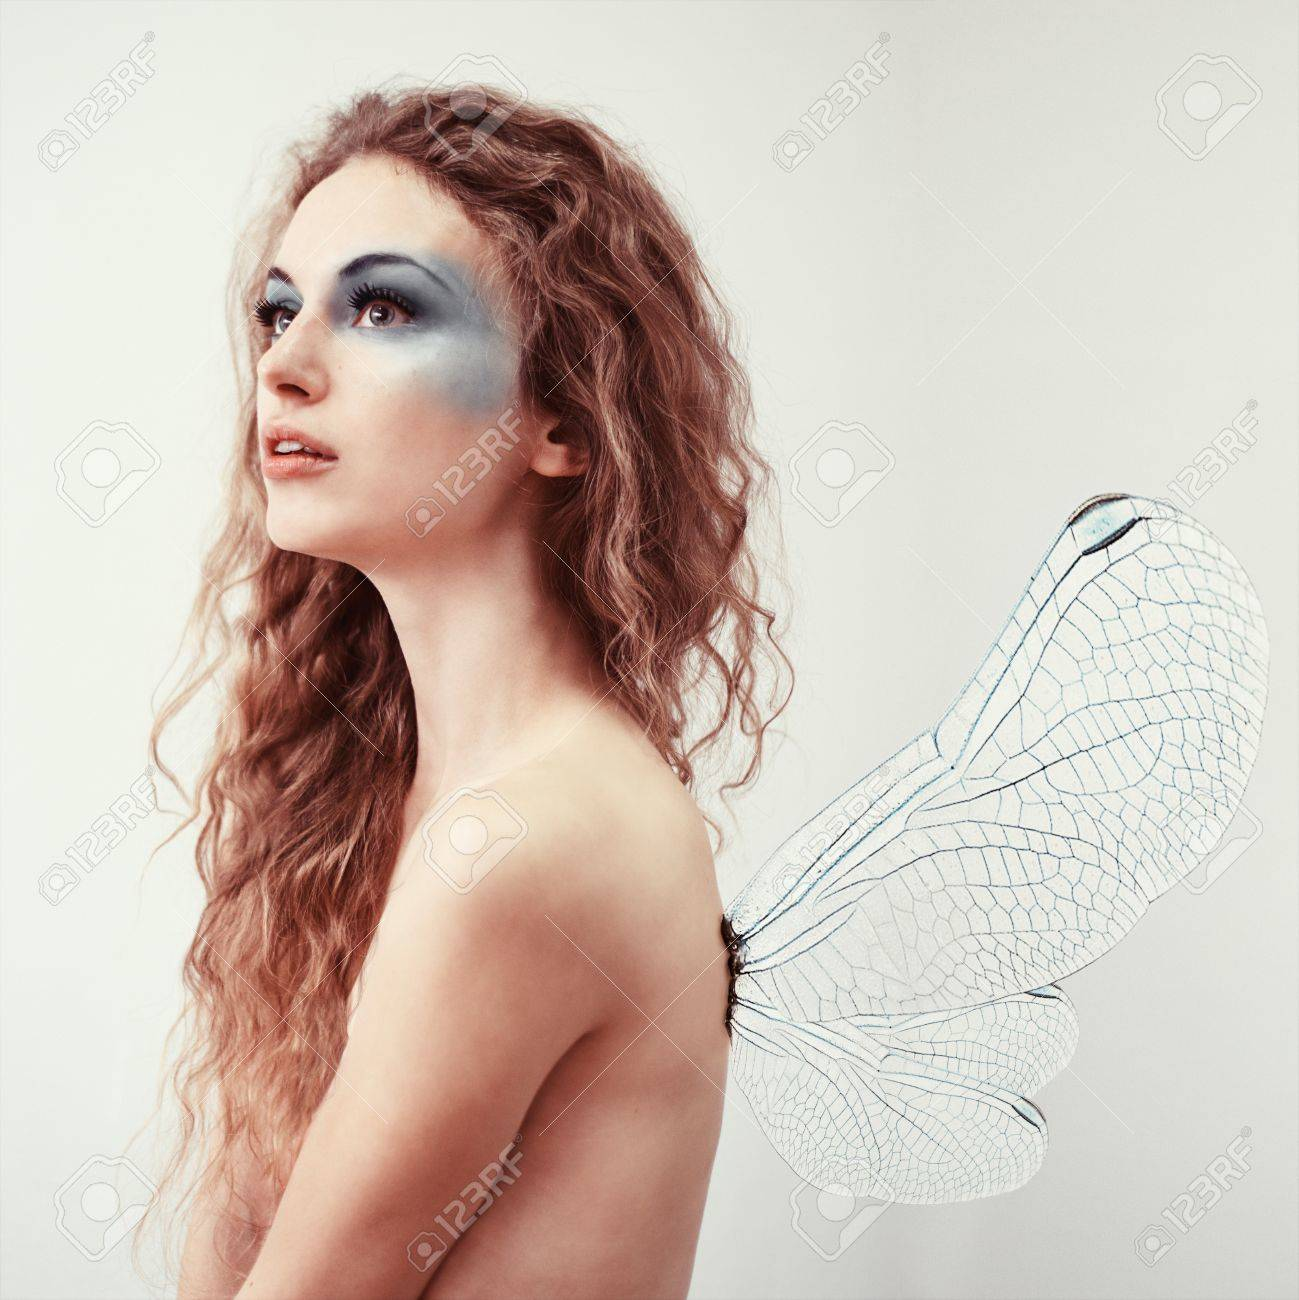 Nude Girl Elf With Make Up Shot In The Studio On A White Background Stock